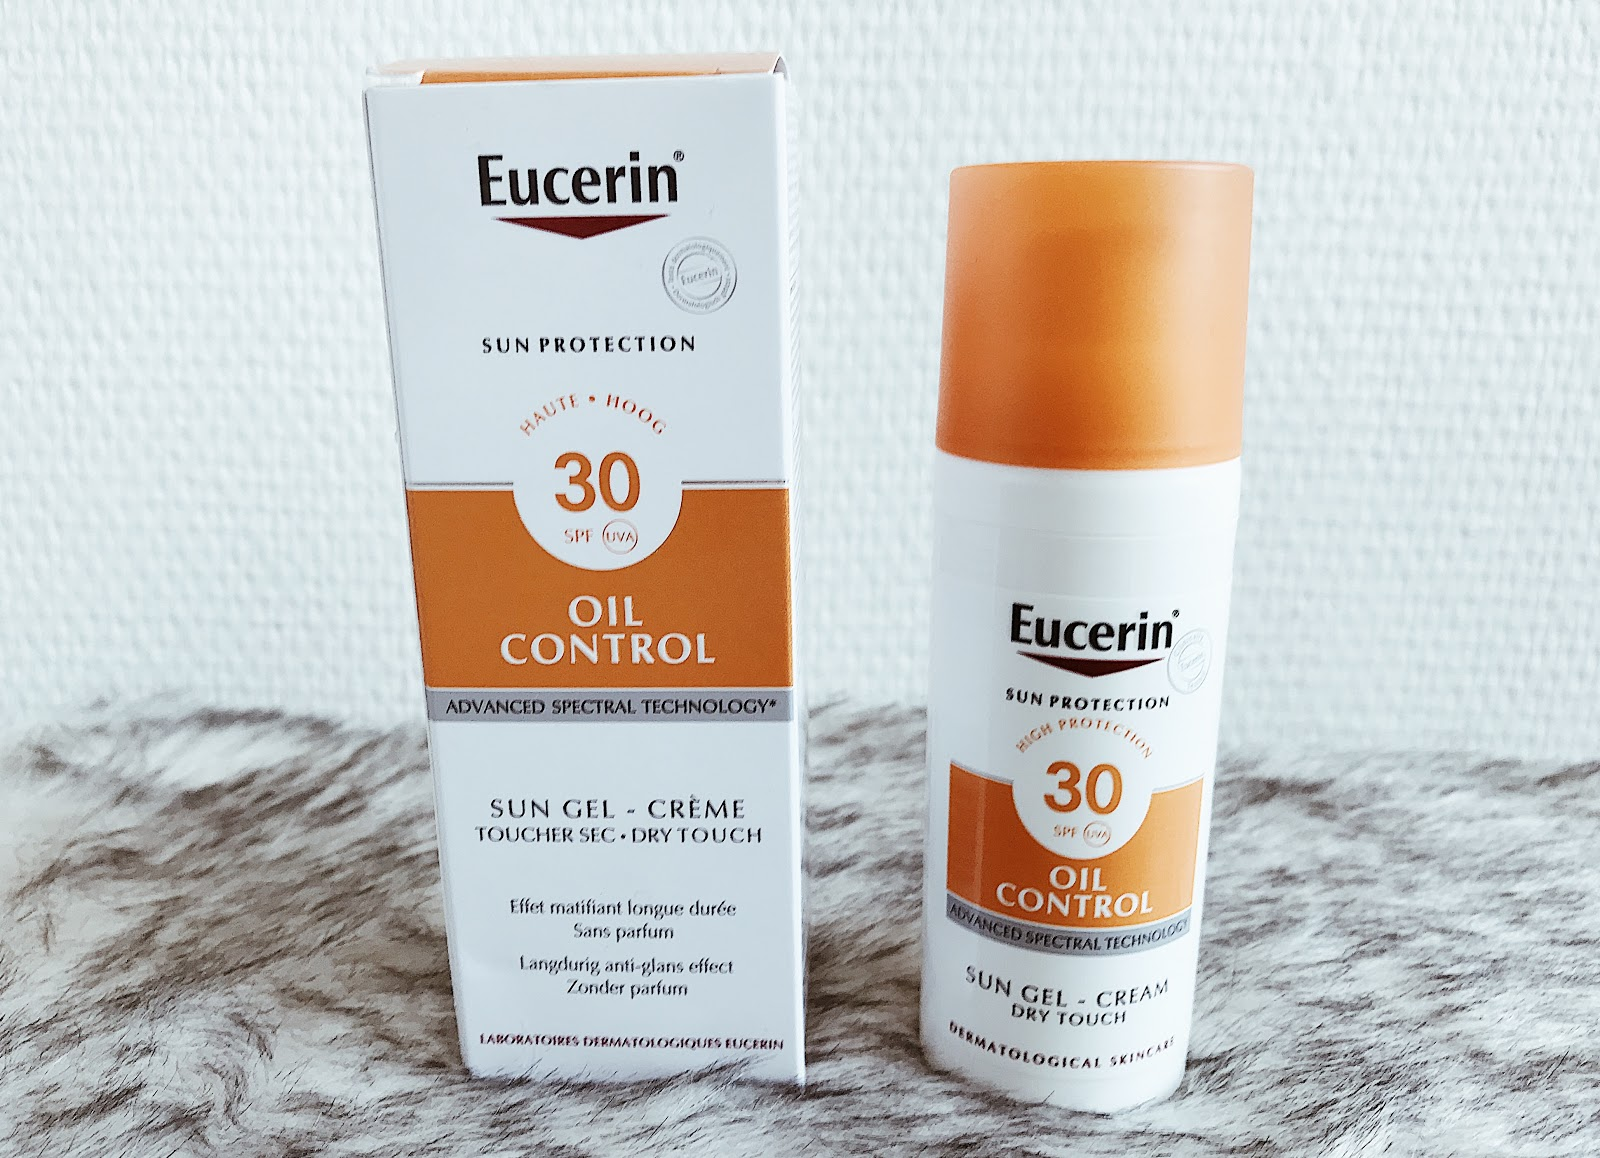 Eucerin Sun Protection SPF 30 Oil Control